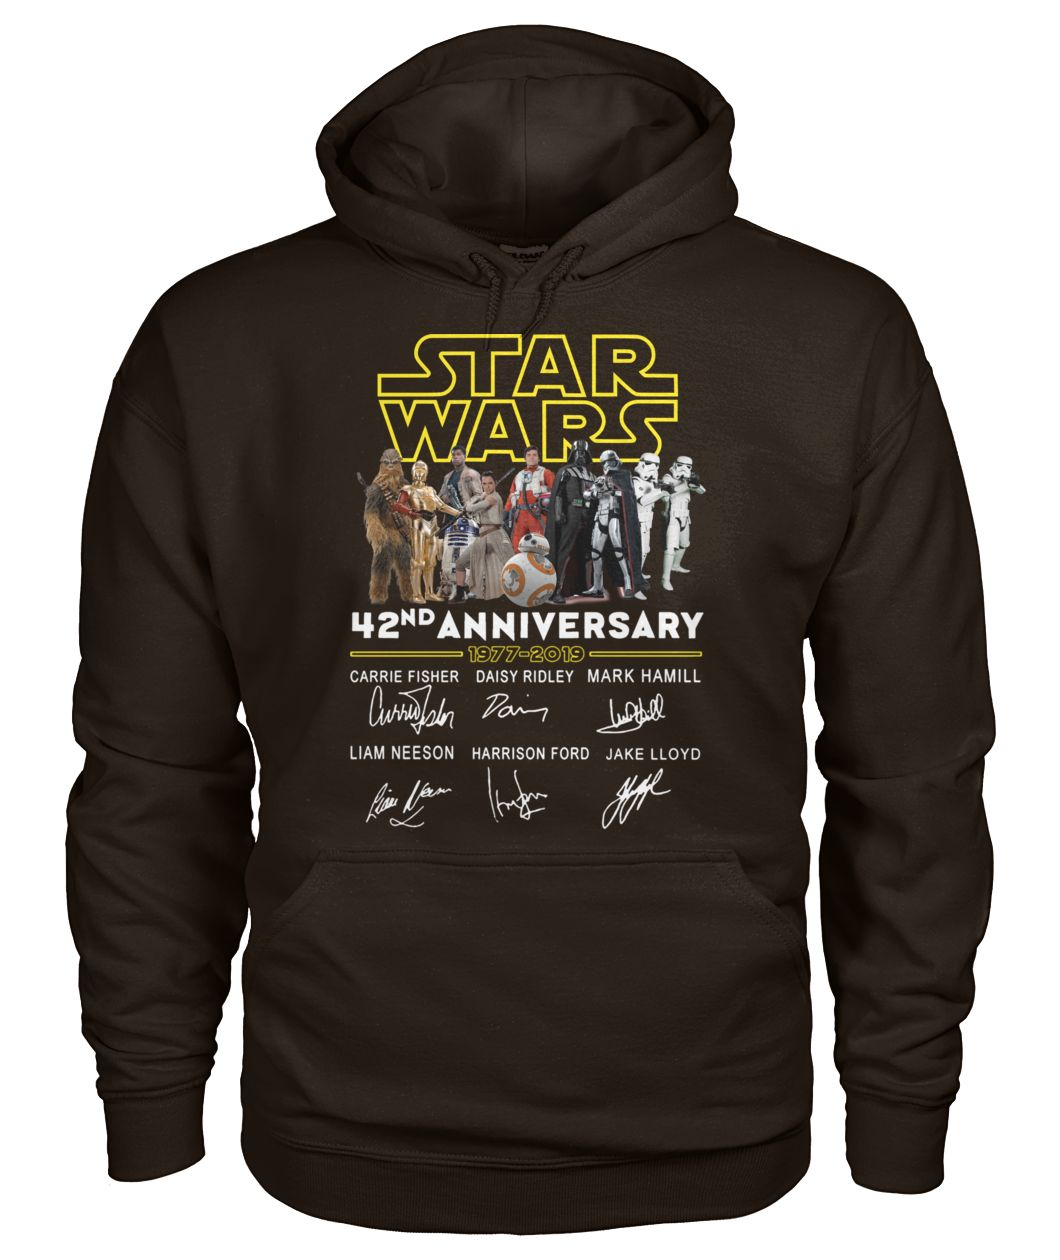 Star wars 42nd anniversary 1977-2019 signatures gildan hoodie